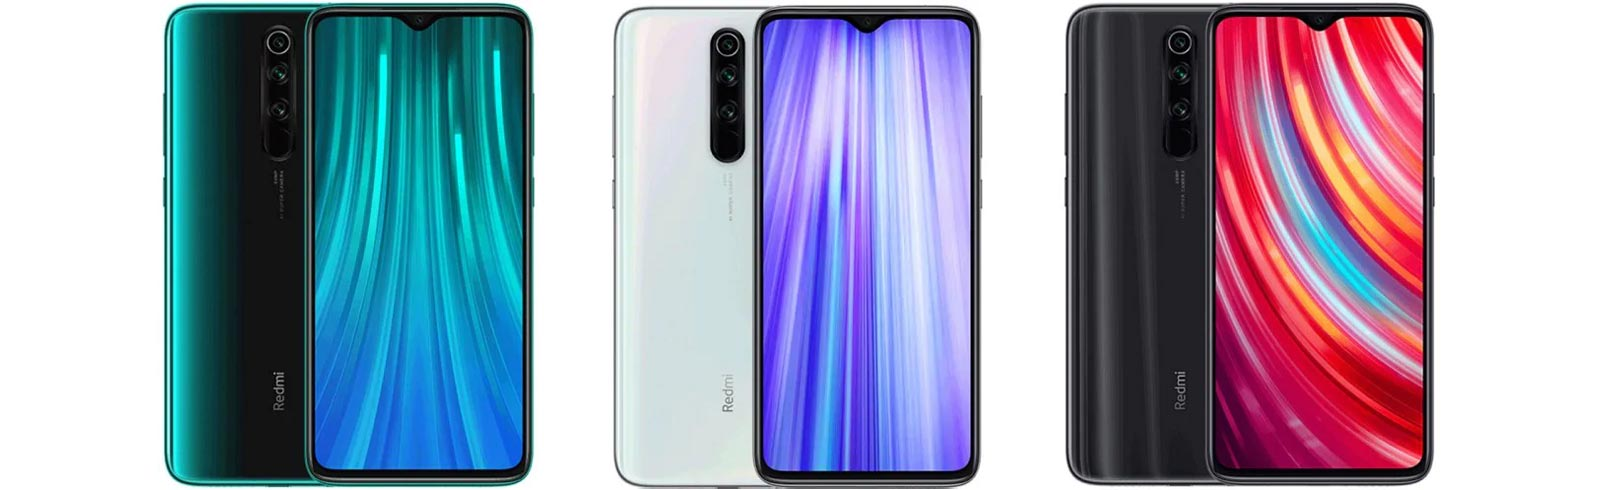 Redmi Note 8 And Redmi Note 8 Pro Go On Pre Sale On Gearbest Discount Coupons